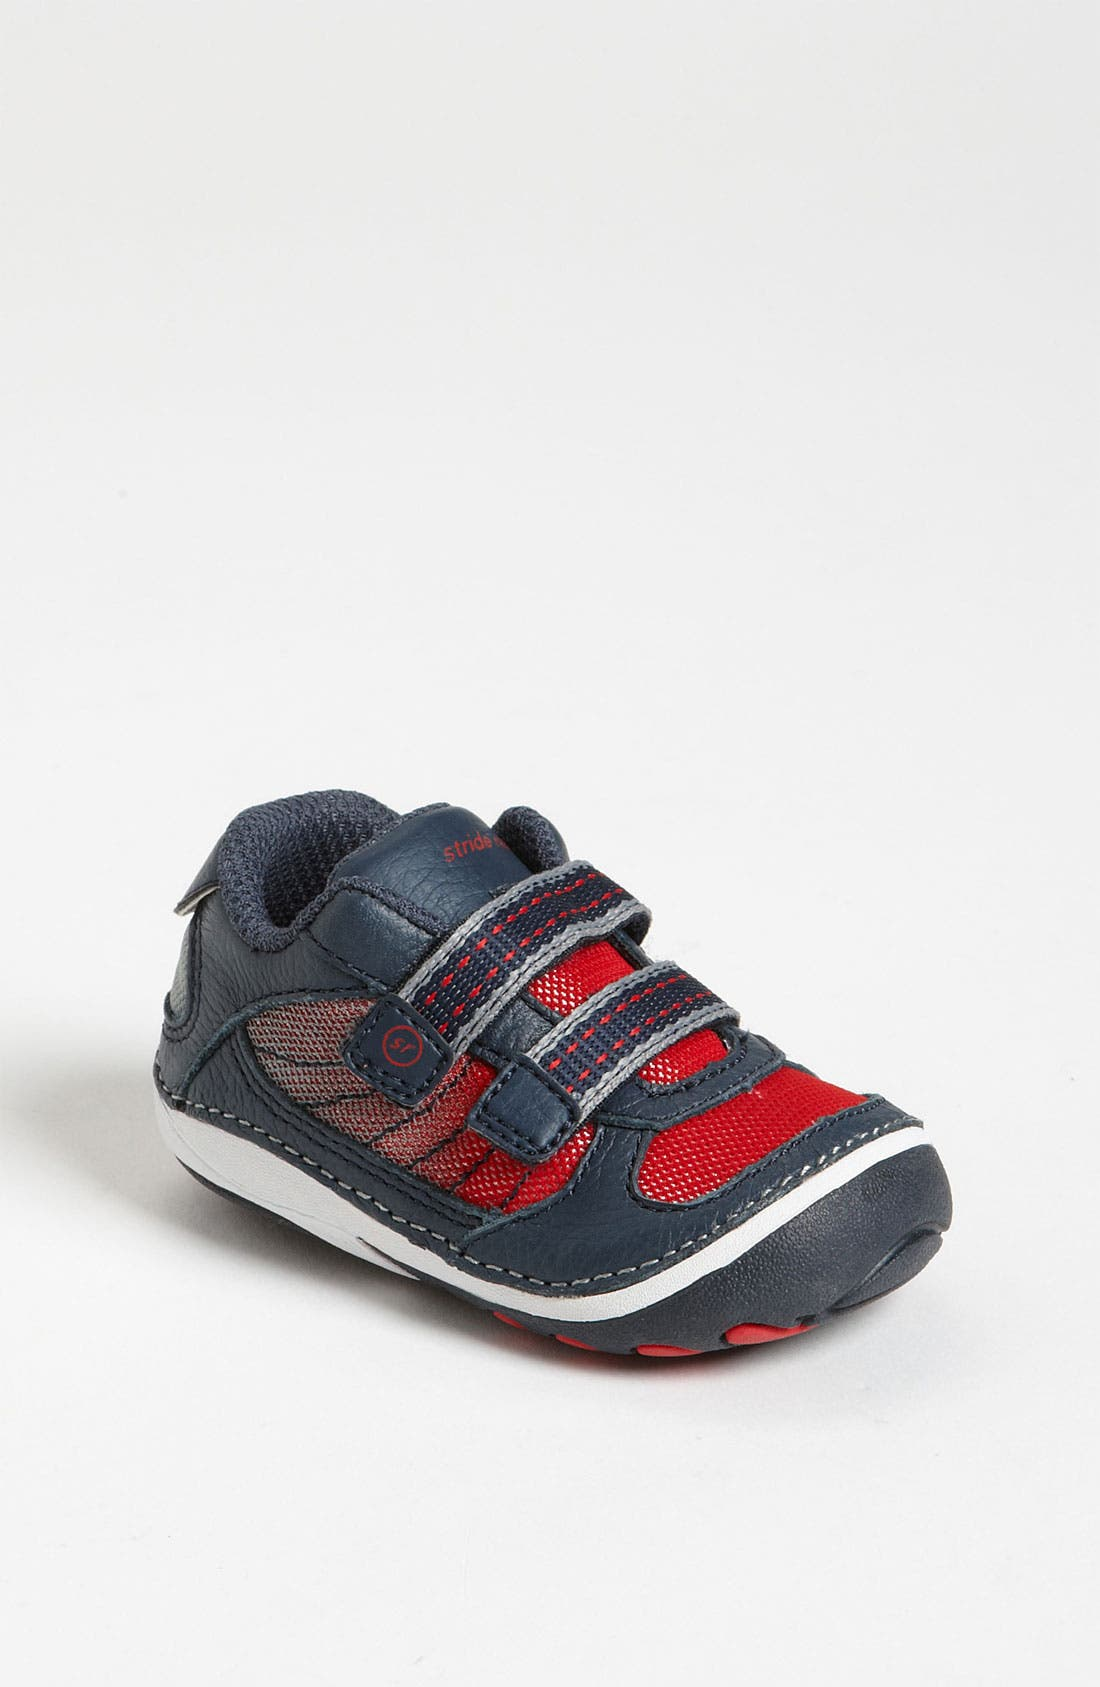 Alternate Image 1 Selected - Stride Rite 'Ronaldo' Sneaker (Baby & Walker)